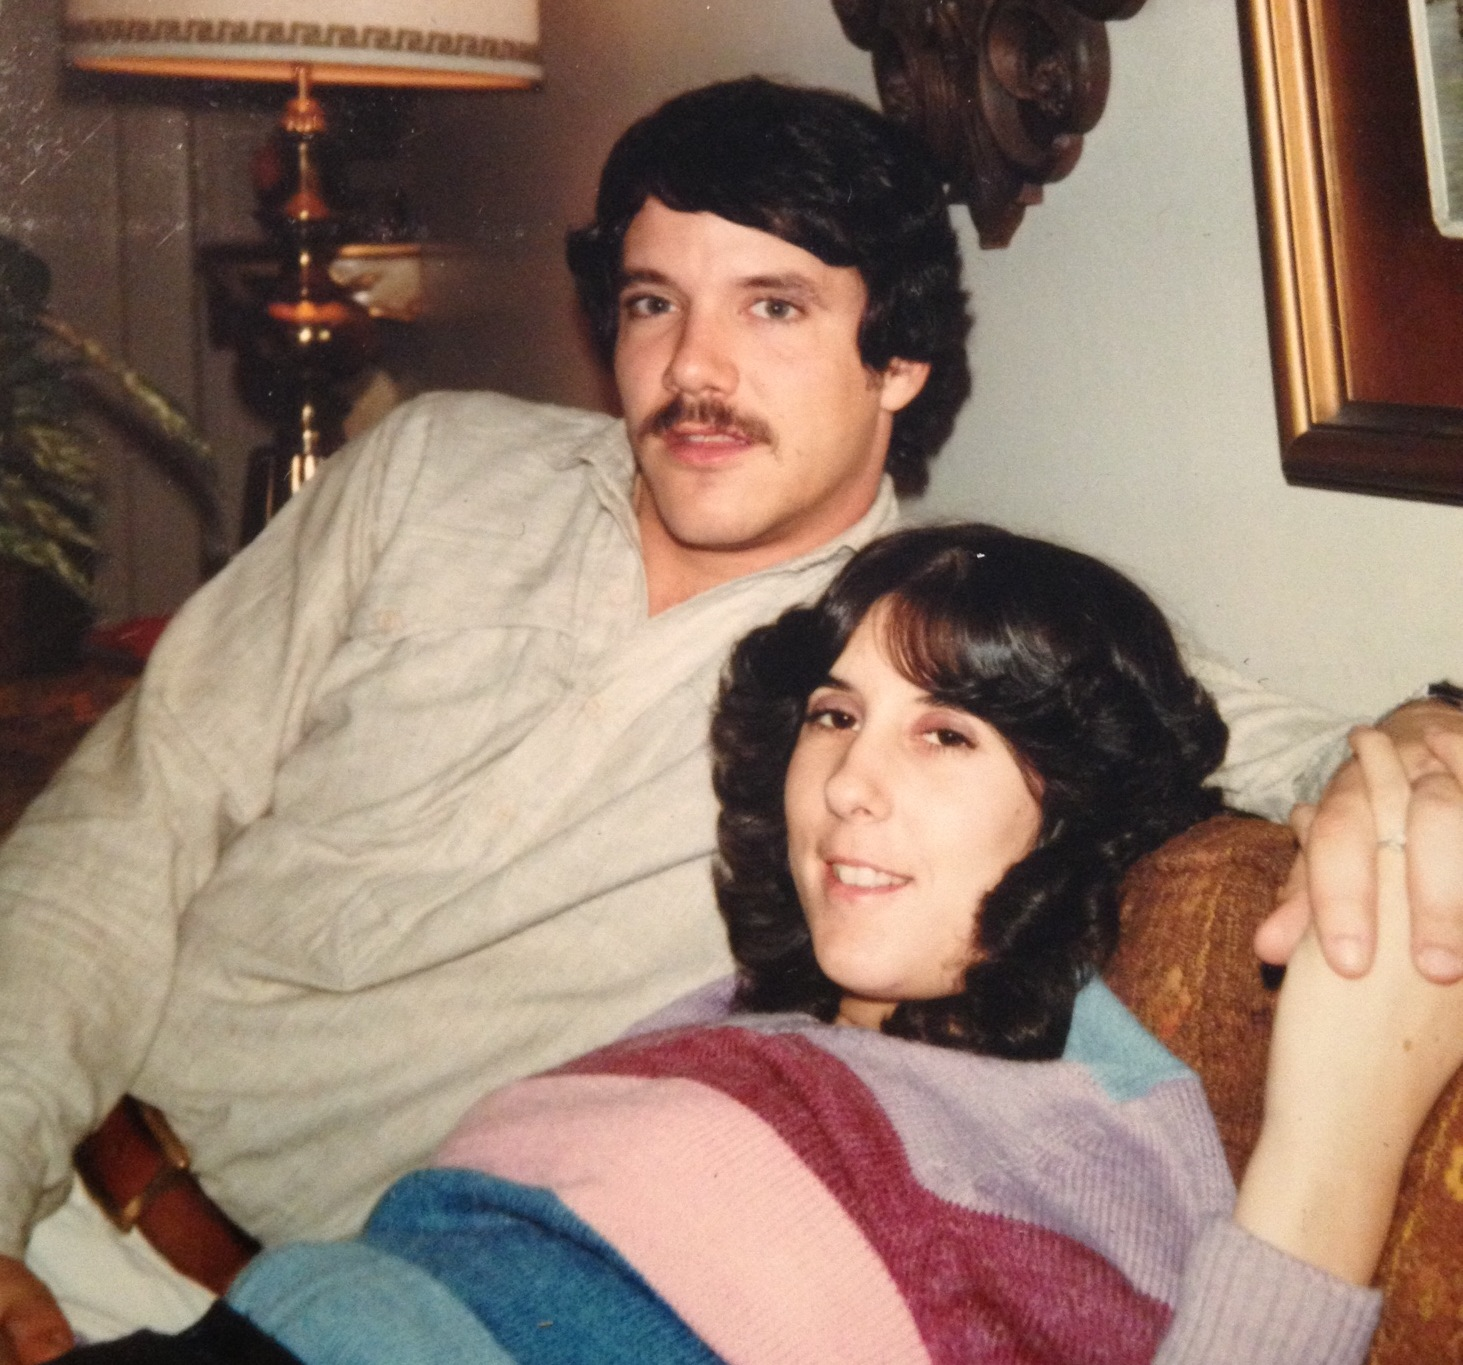 My mom and dad in their earlier years.